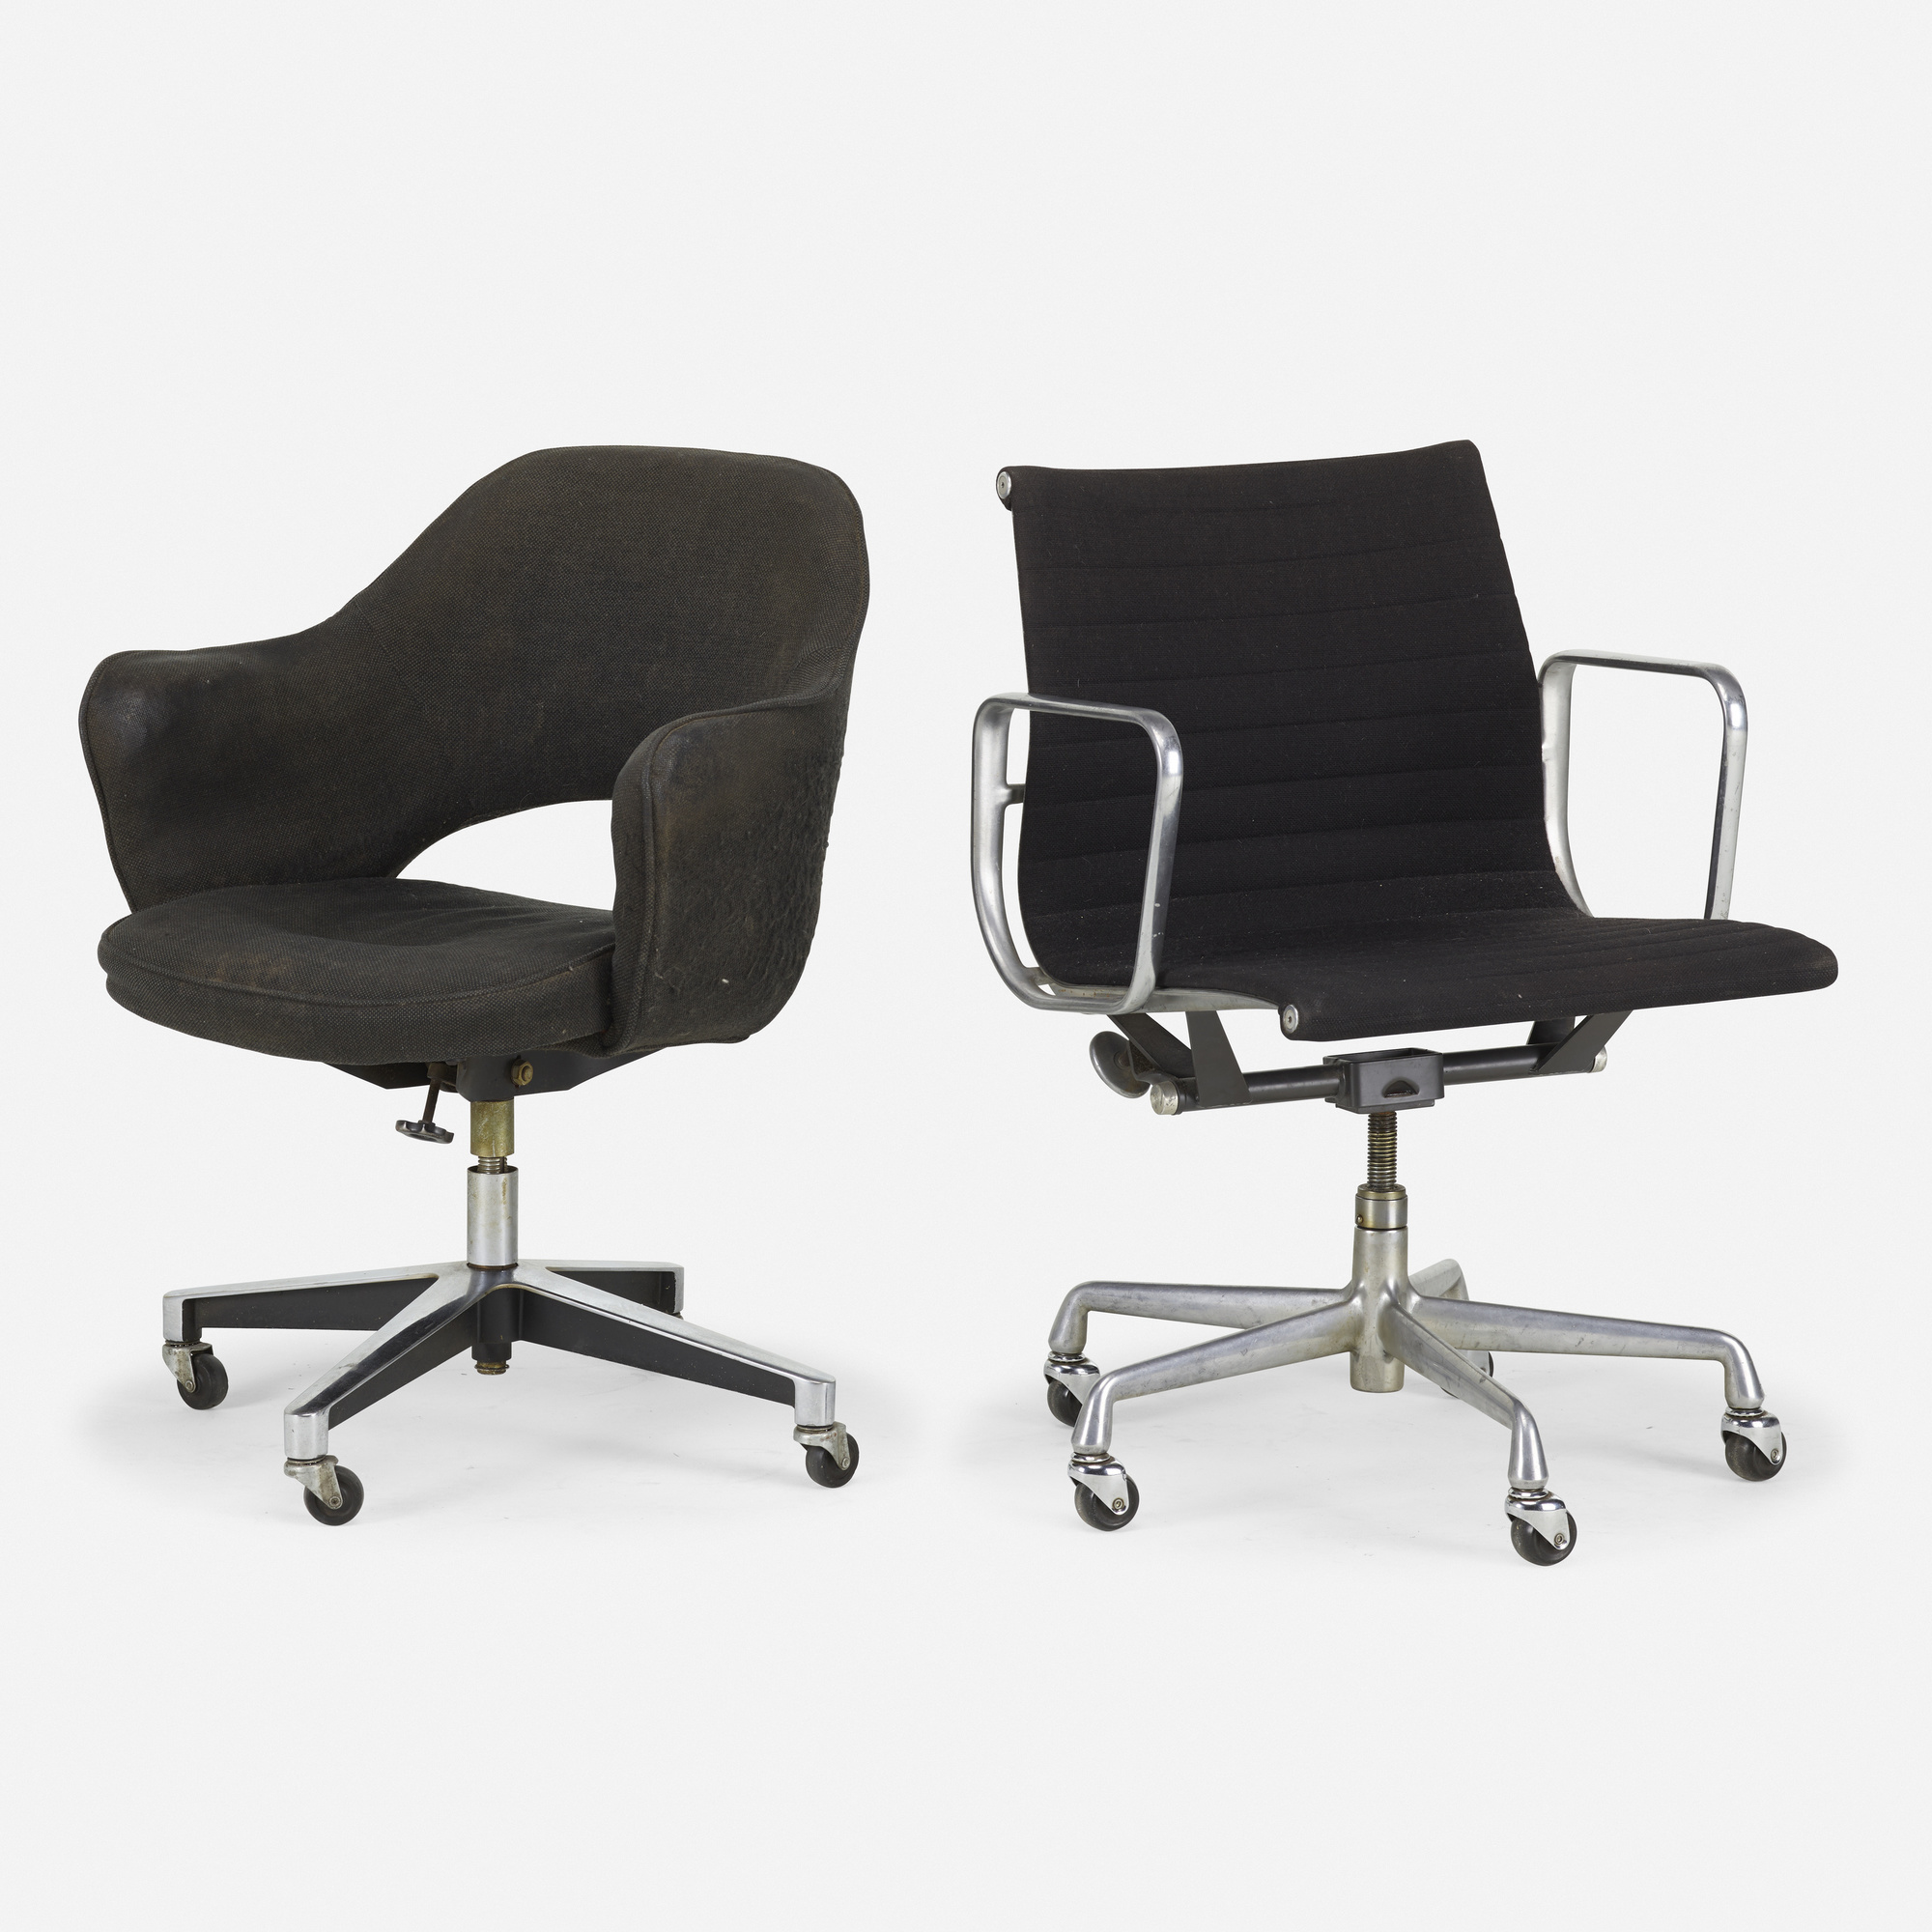 1197 Charles Eames And Eero Saarinen Aluminum Group Office Chair And Executive Arm Chair Unreserved Day 1 20 August 2020 Auctions Rago Auctions